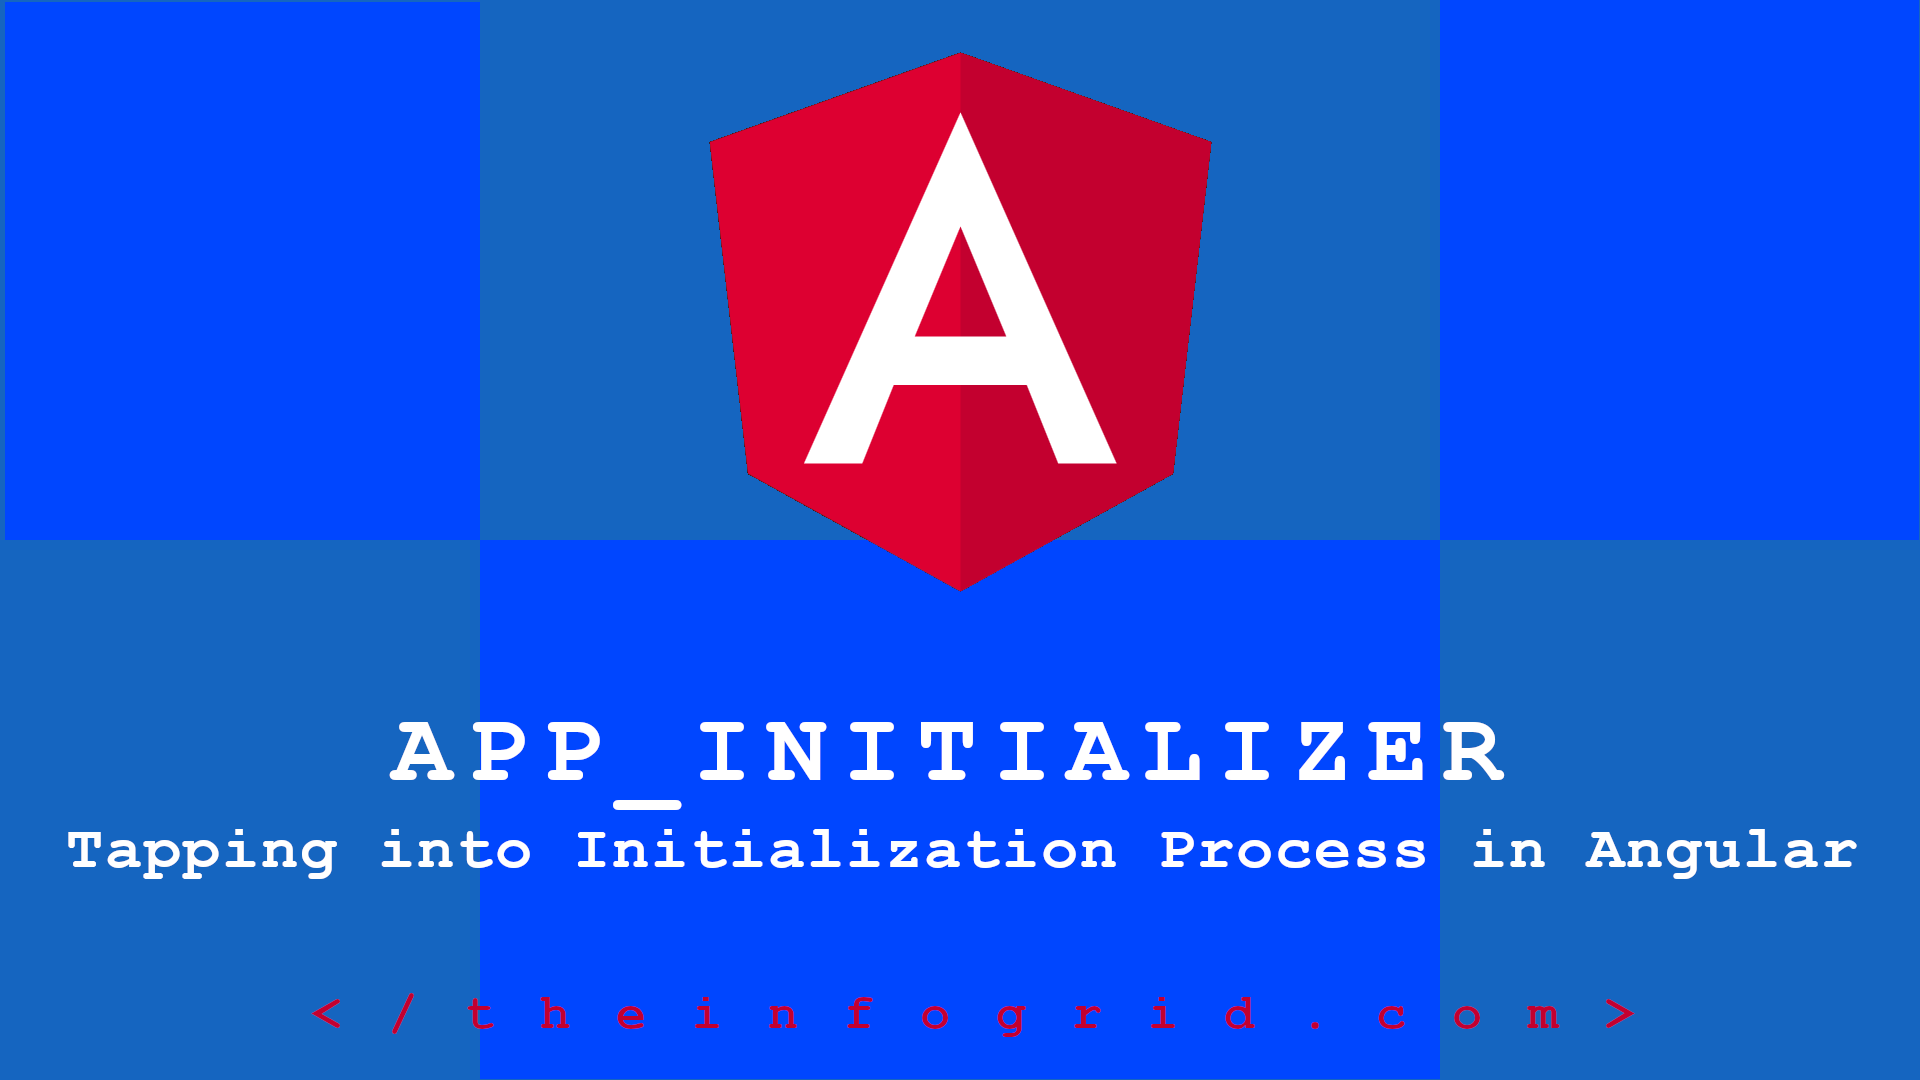 APP_INITIALIZER – Tapping into Initialization Process in Angular